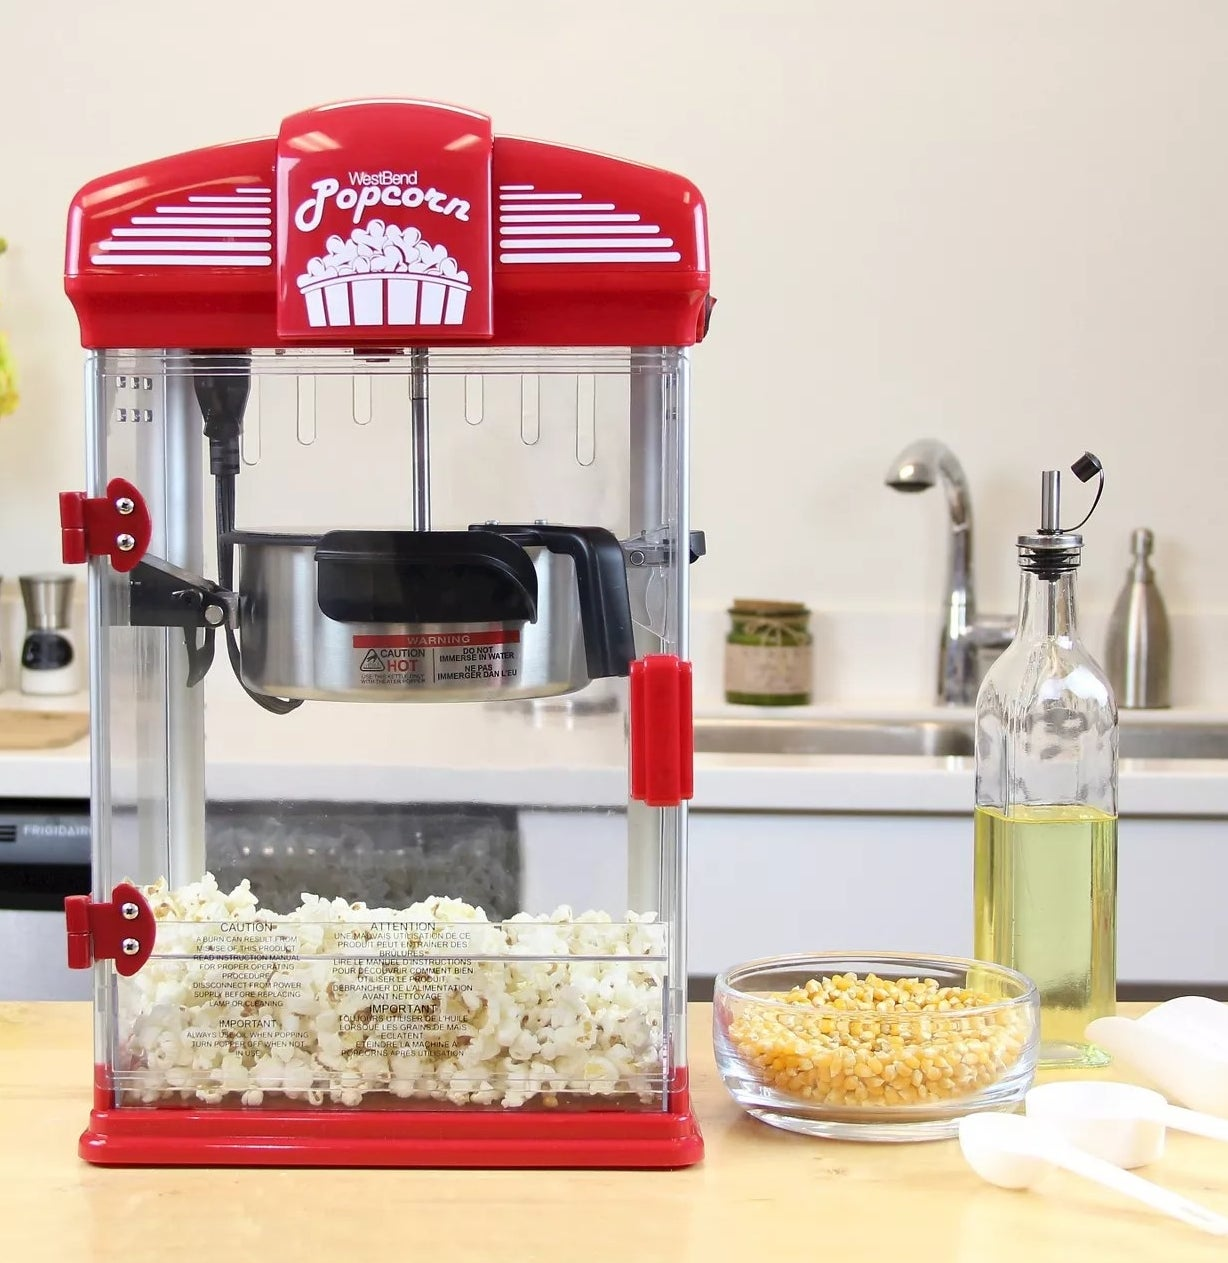 """The machine is red and says """"WestBend"""" """"Popcorn"""" and has kernels and oil surrounding it"""